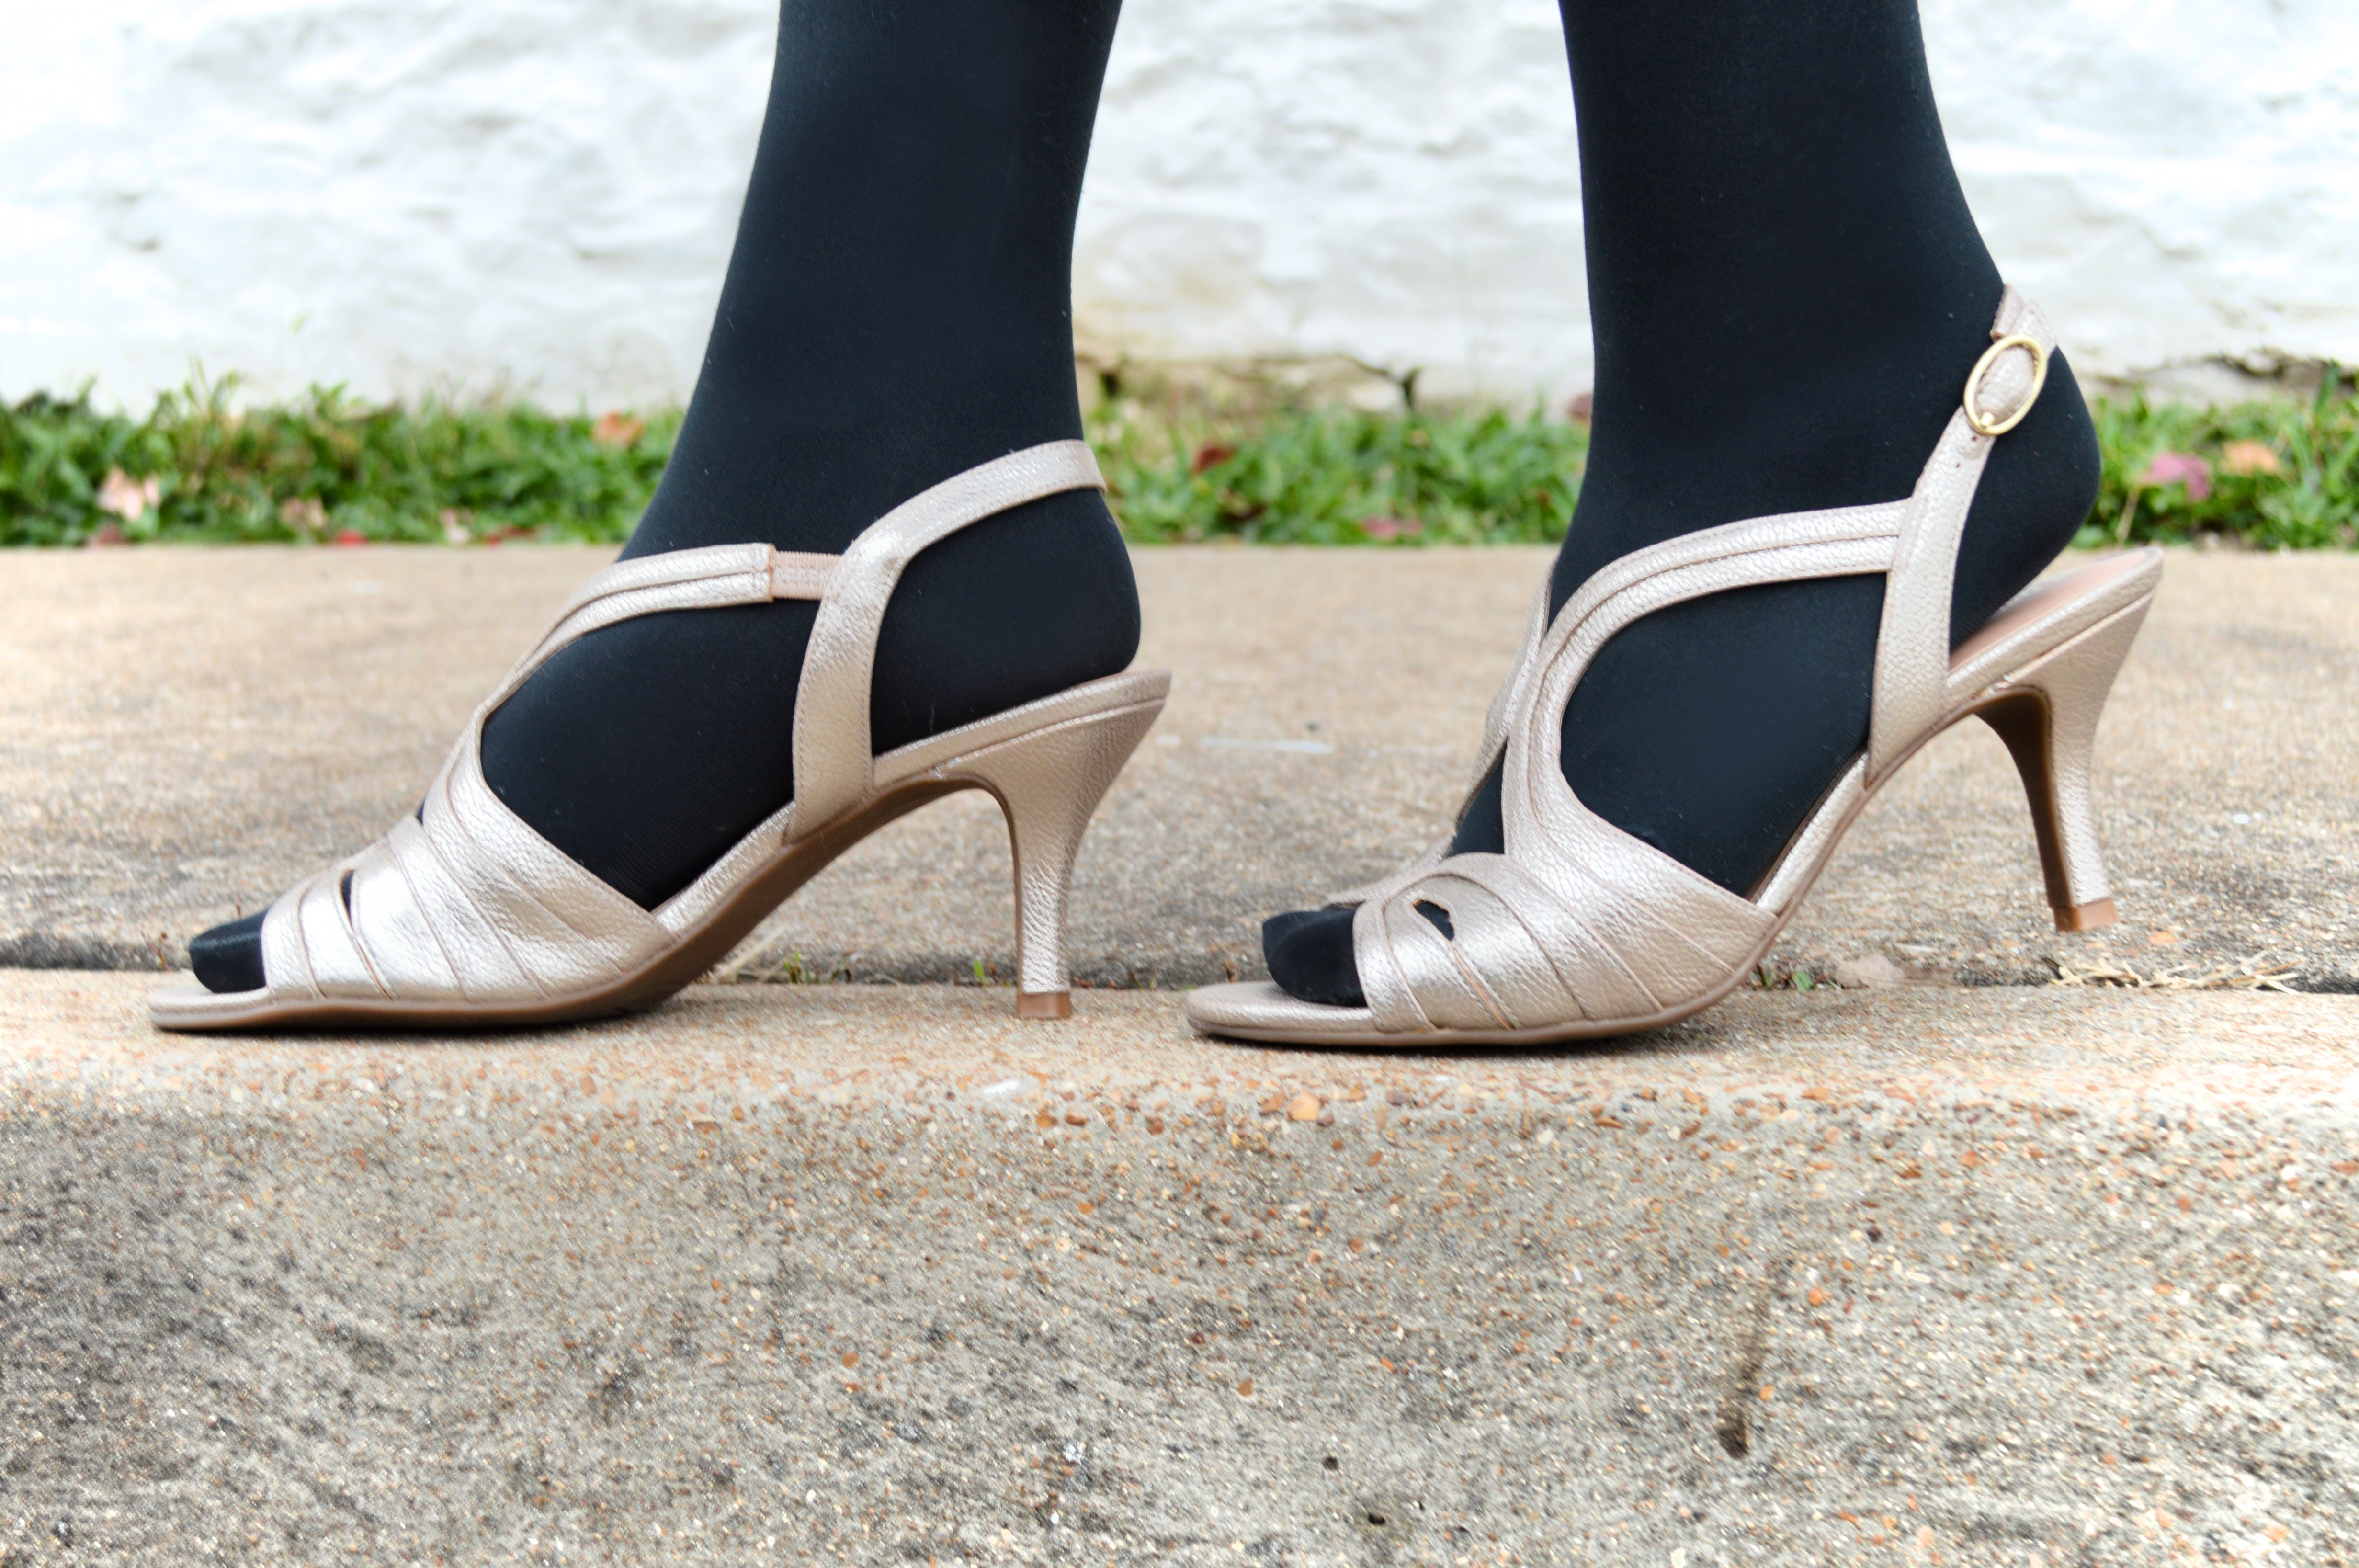 What Shoes To Wear With Black Dress To Wedding